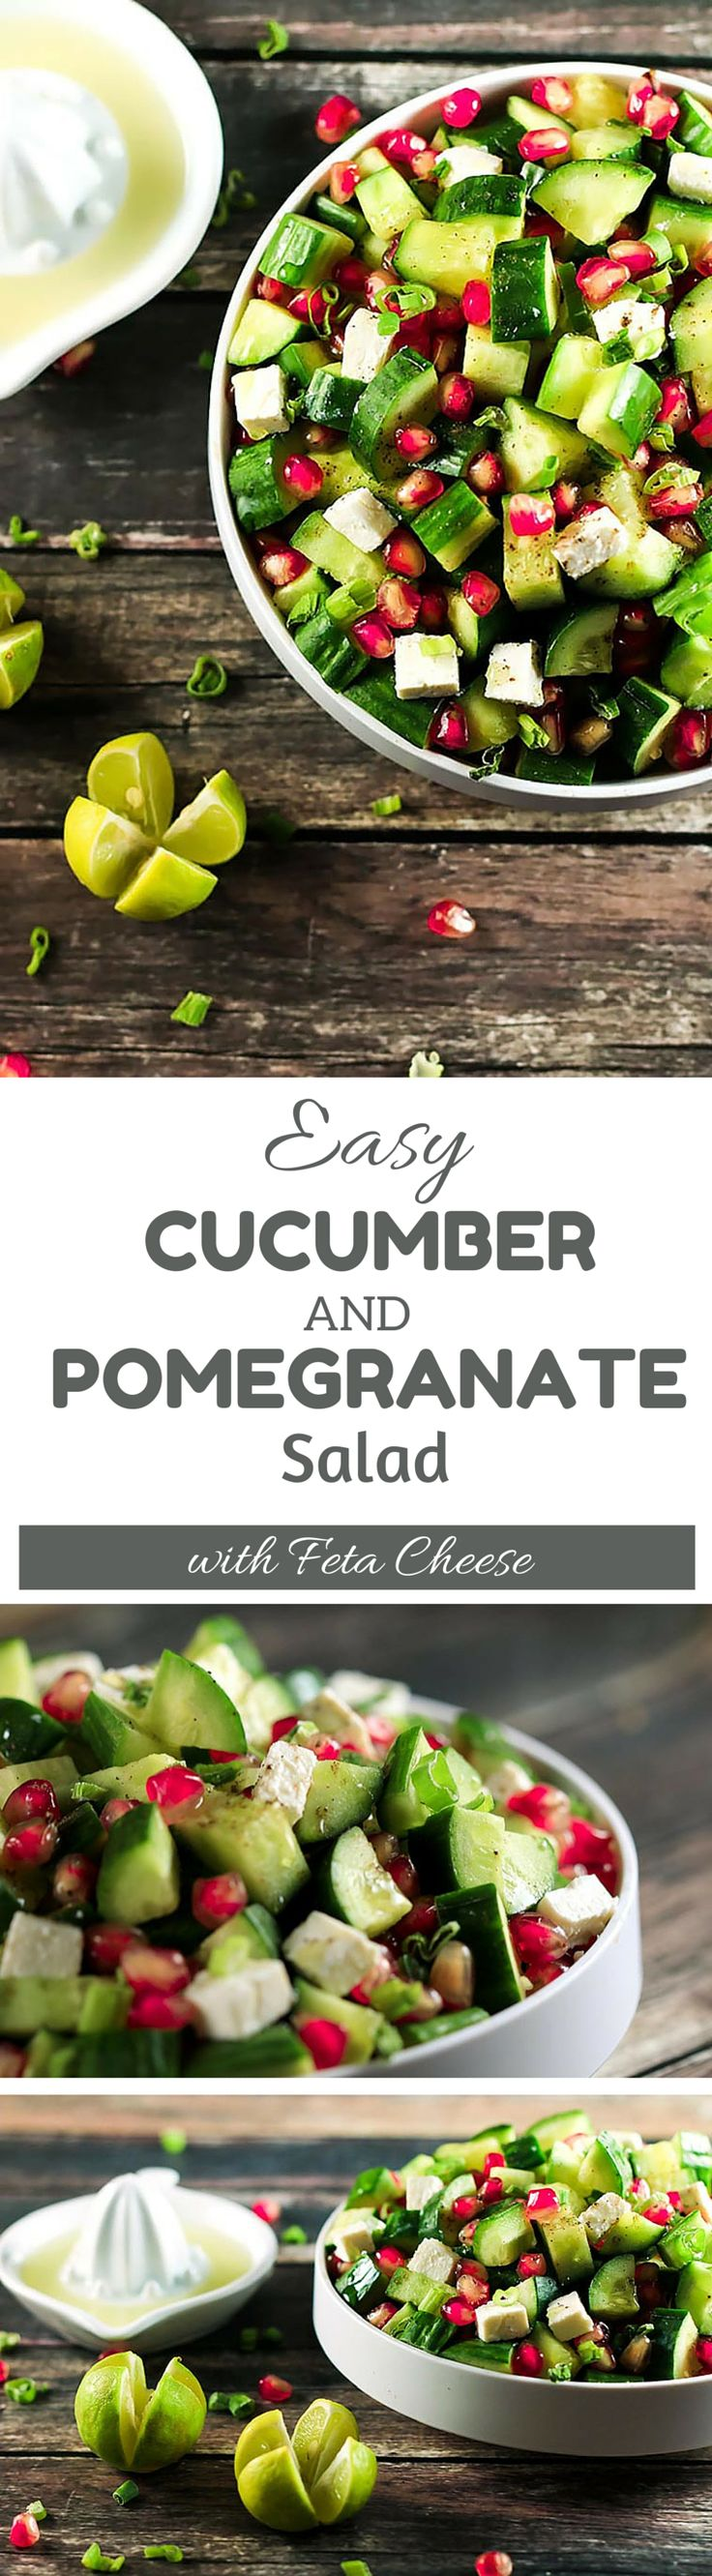 The combination of flavors in this recipe will have you addicted! The contrast between the pomegranate and feta cheese is beautiful - and the cucumbers go so well! ScrambledChefs.com